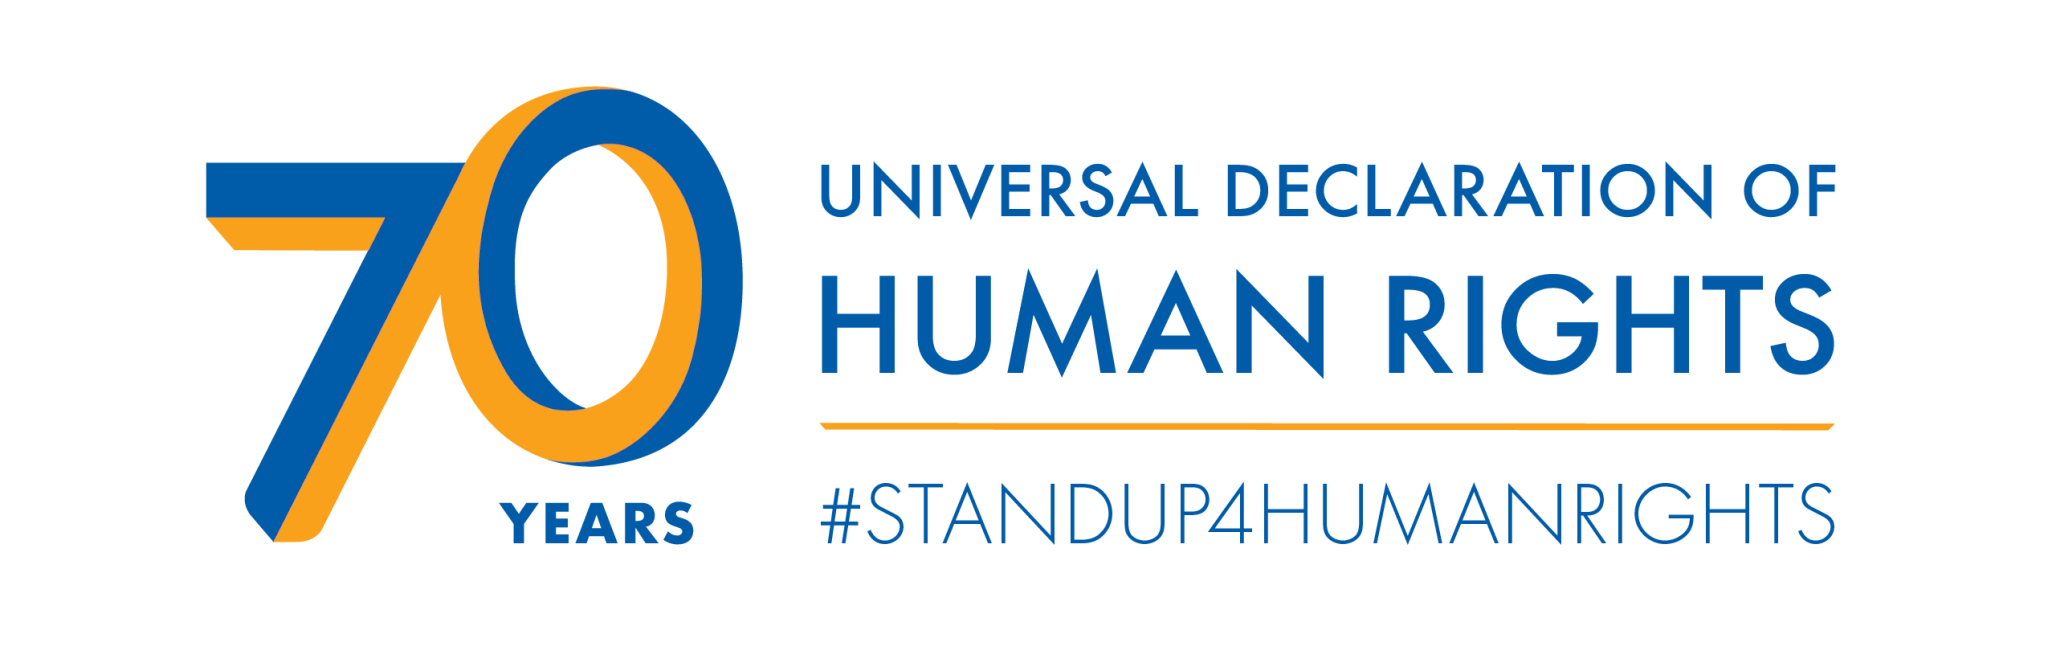 70_Years_UDHR_LOGO_E-01.png